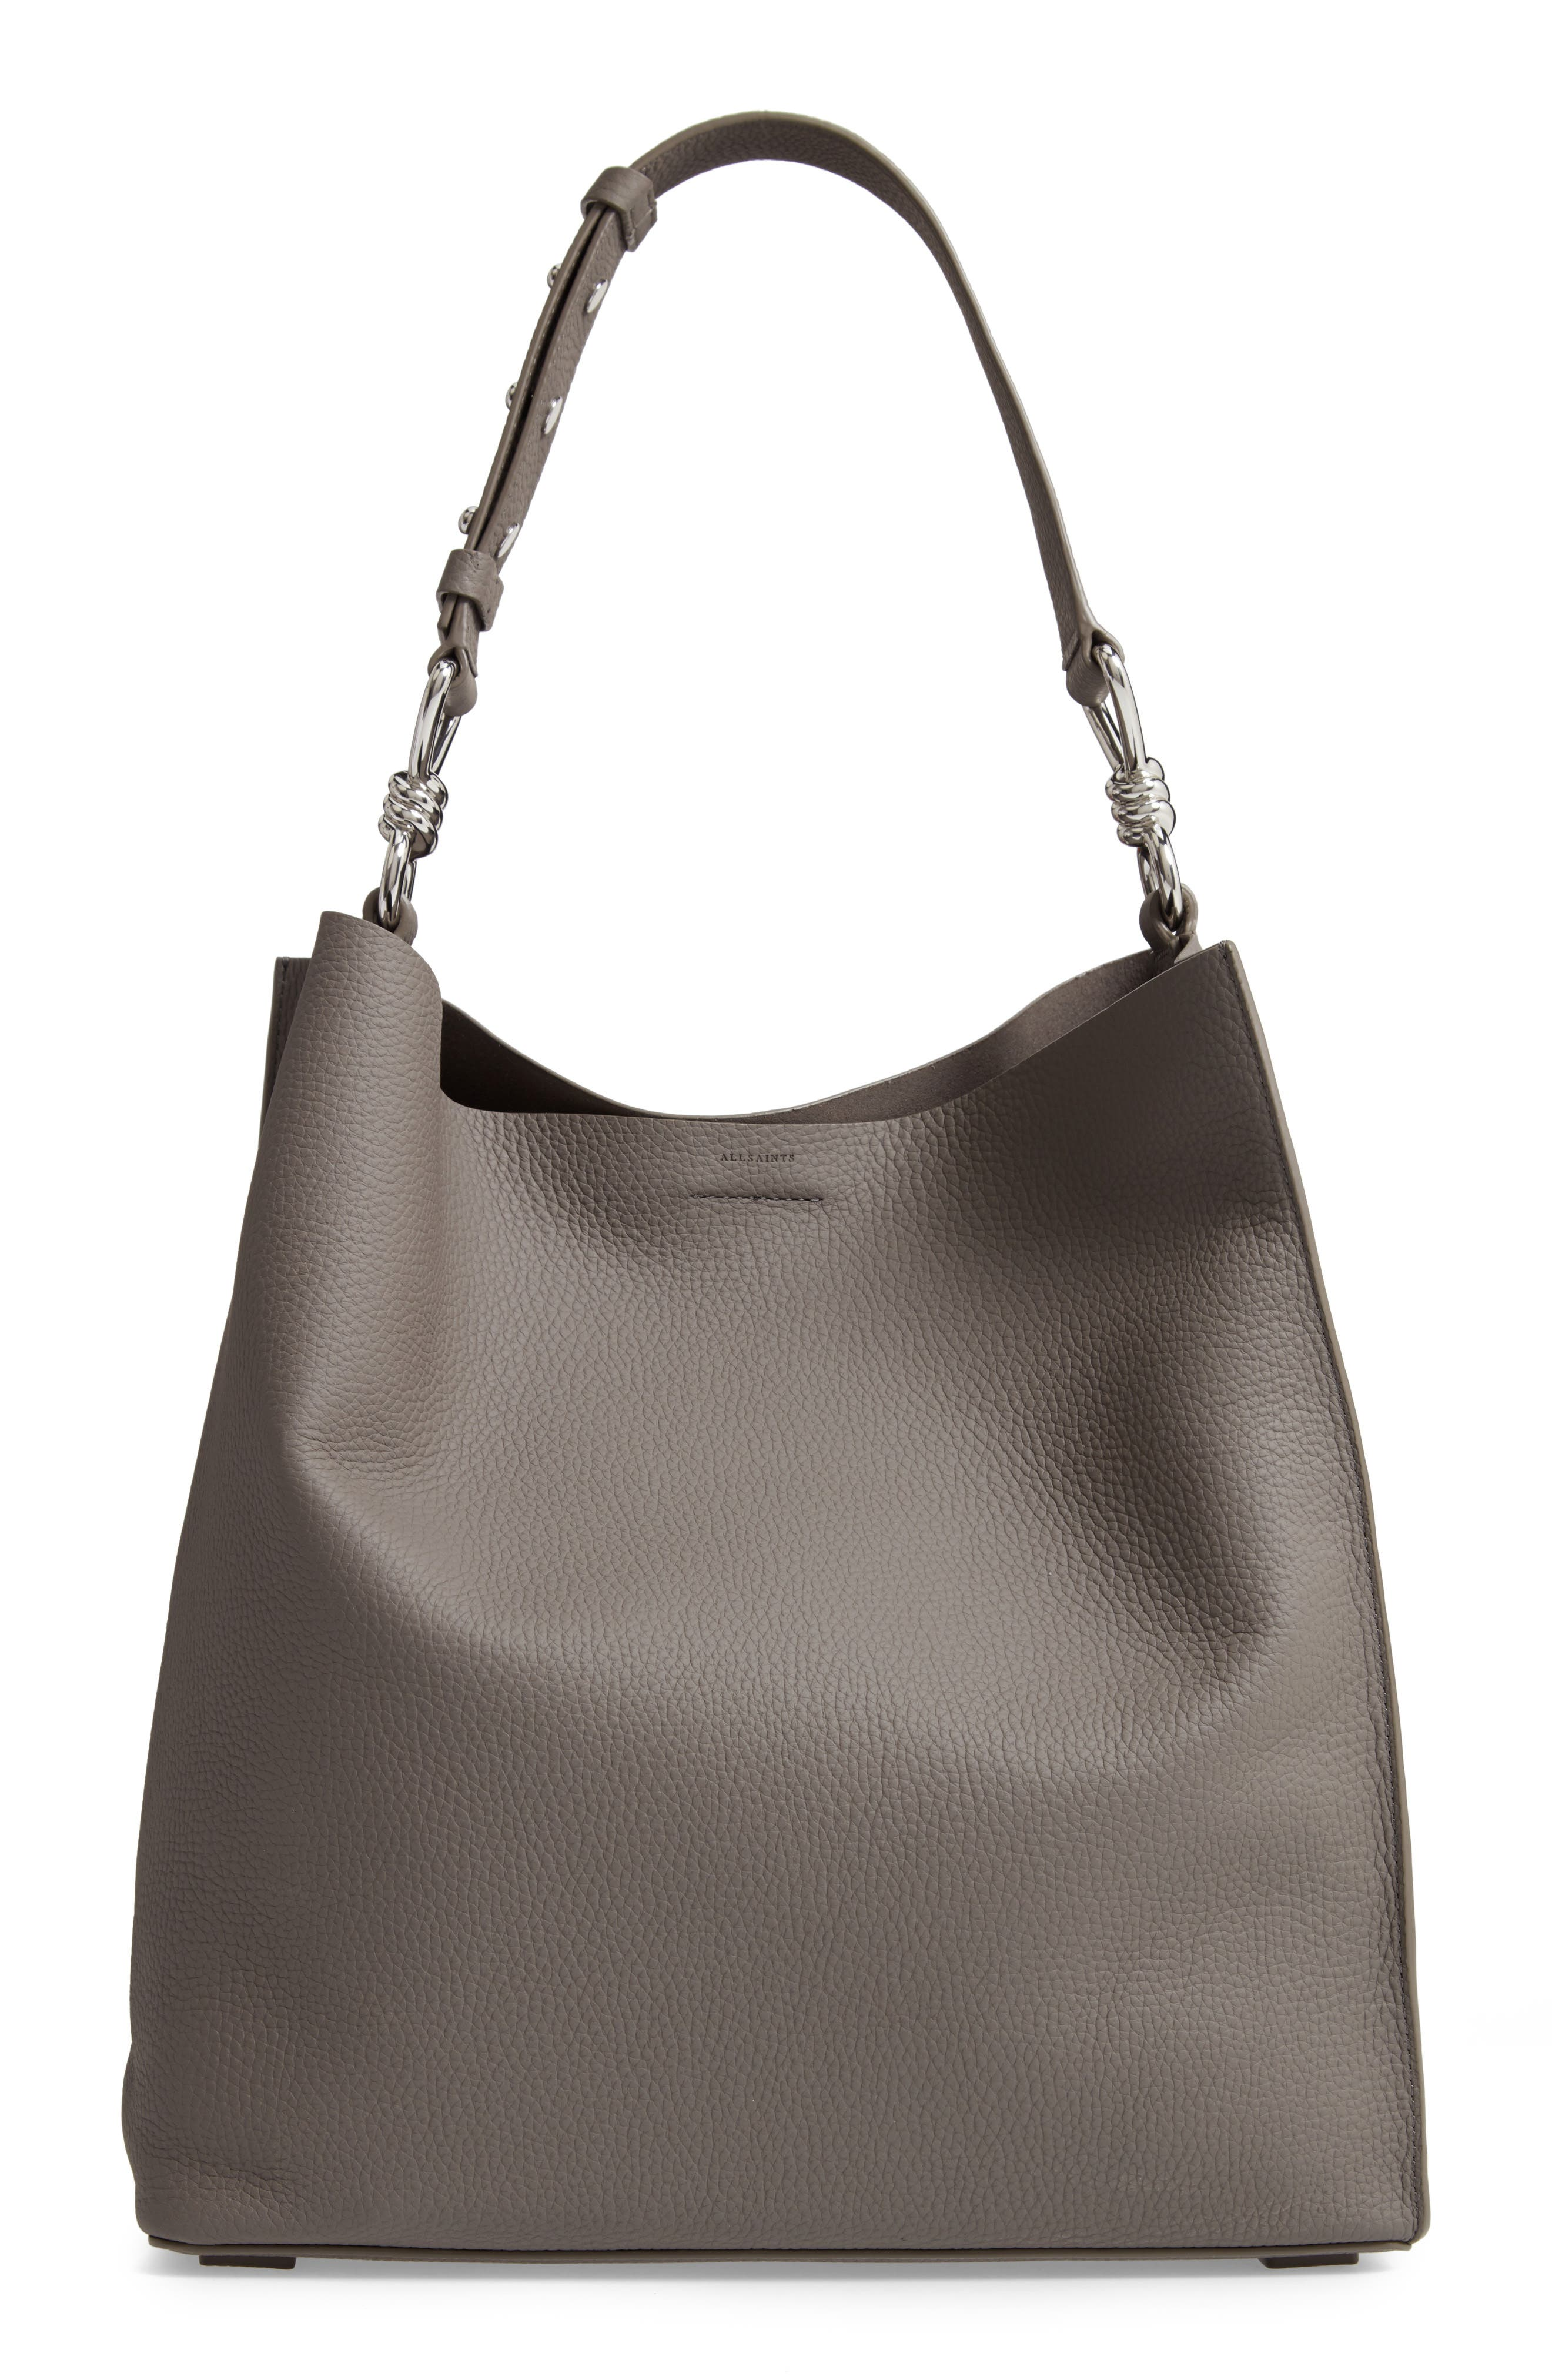 Allsaints Totes CAPTAIN NORTH/SOUTH LEATHER TOTE - GREY